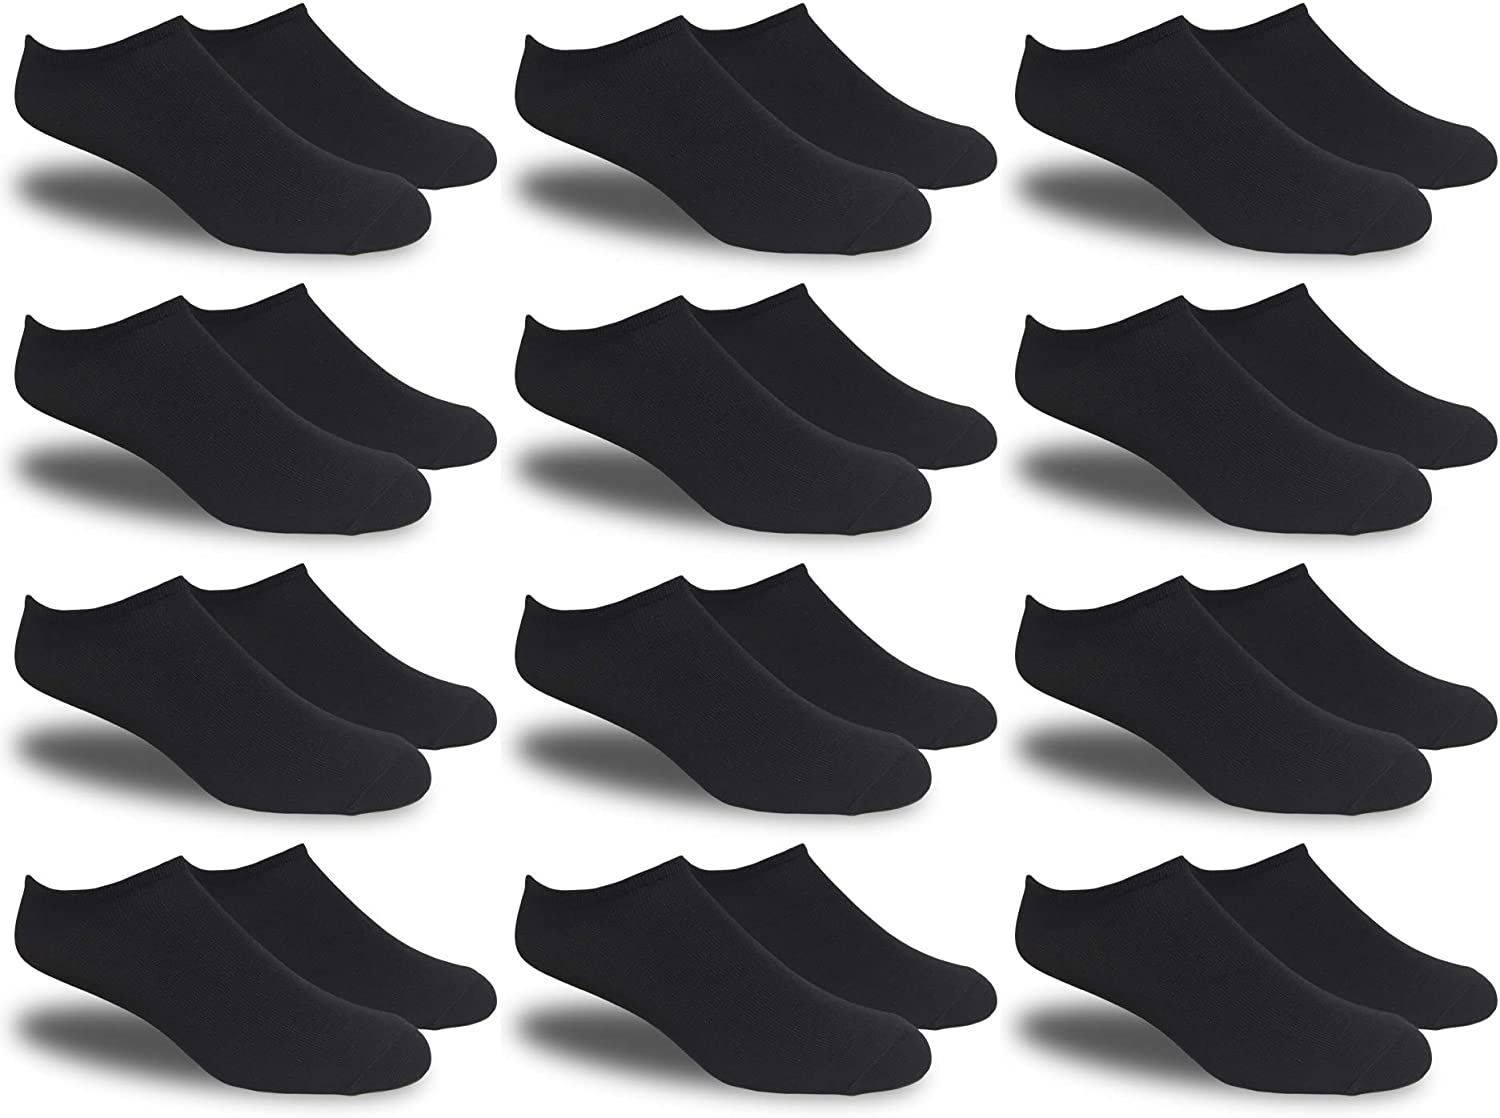 Womens White Thin and Lightweight Low-cut Ankle Socks - 12 Pairs